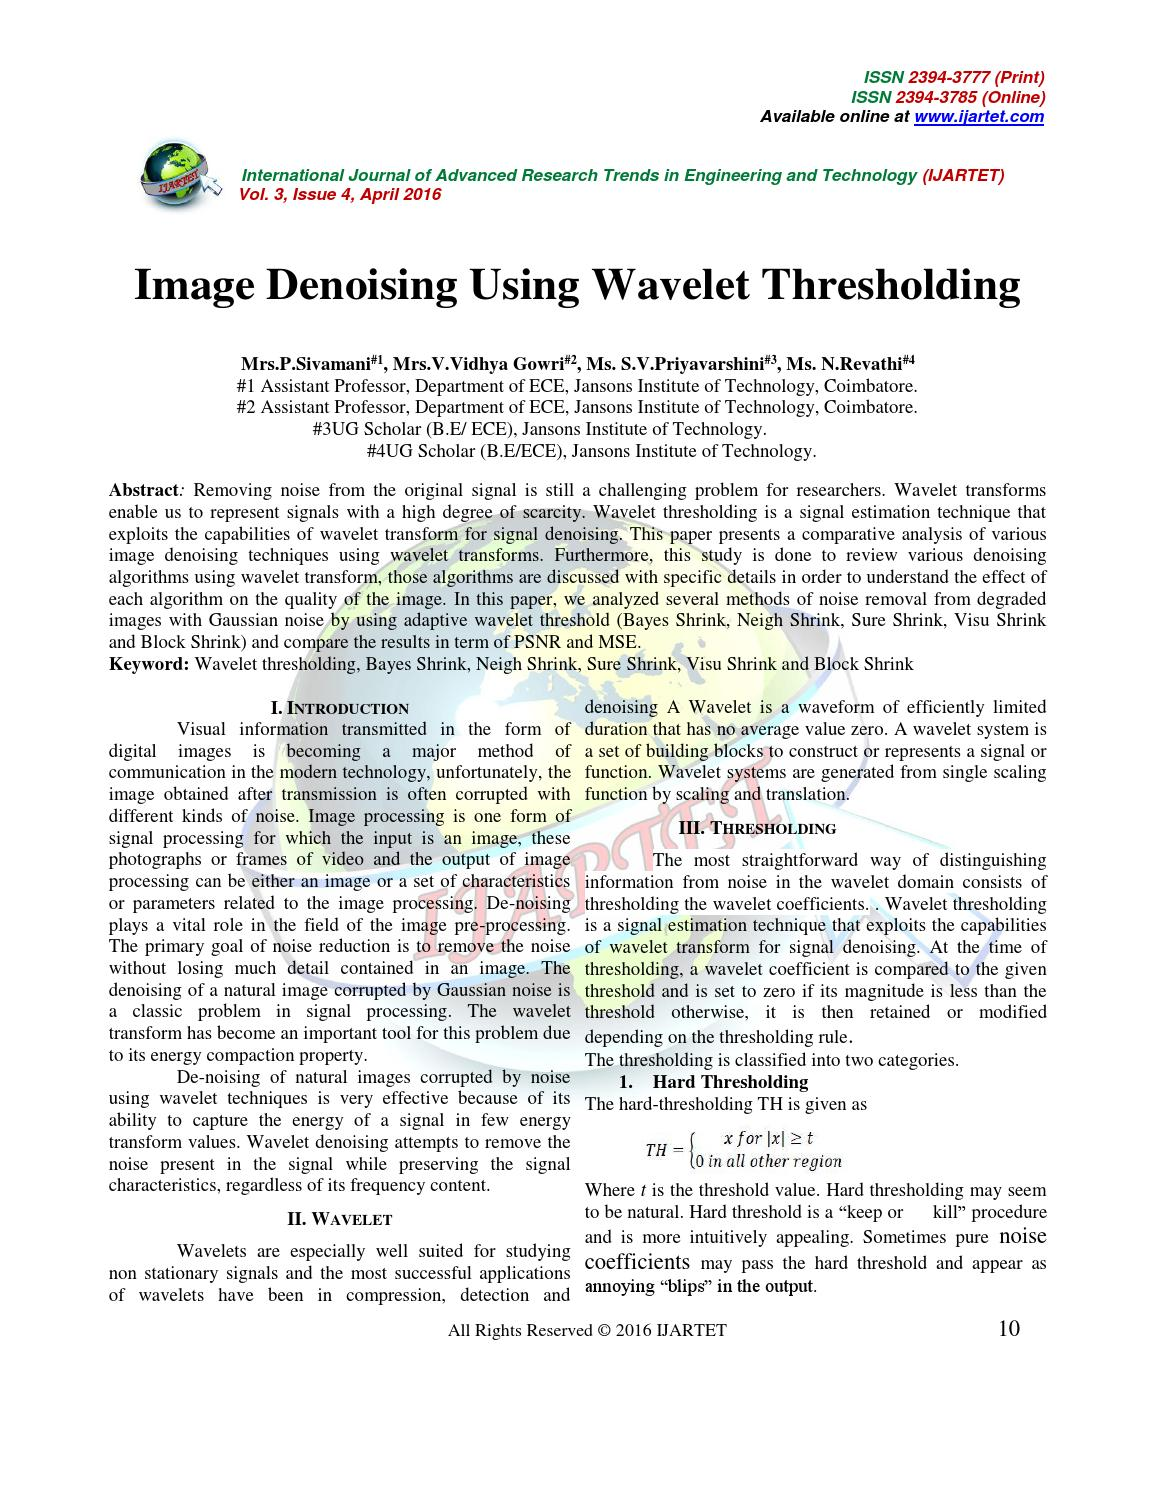 wavelet denoising thesis Adaptive fractal and wavelet image denoising view/ open  or sometimes even compare favorably with the existing image denoising techniques reviewed in the thesis.